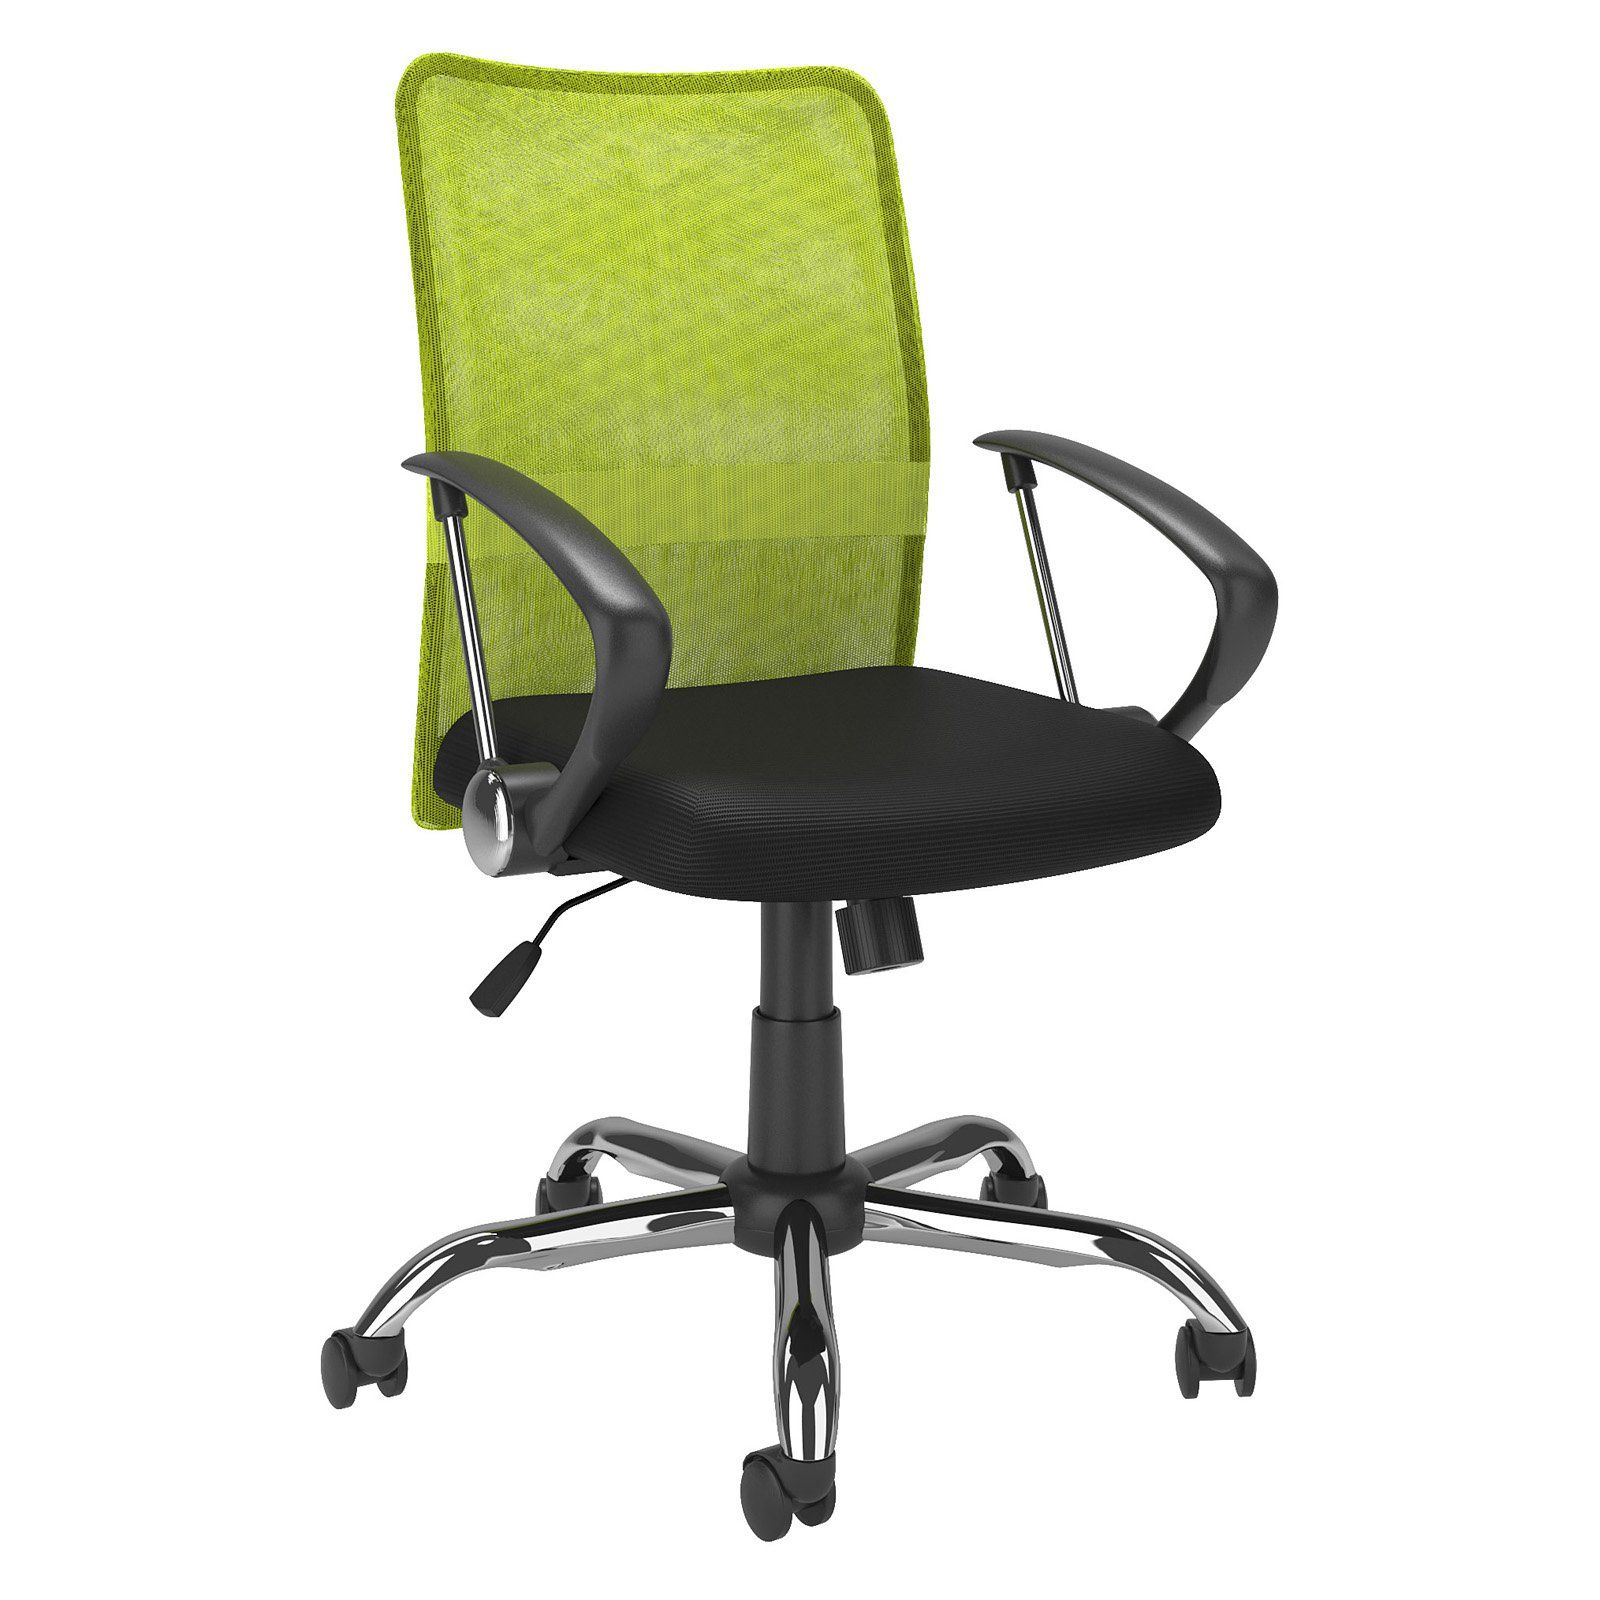 Wondrous Corliving Workspace Office Chair With Contoured Mesh Back Uwap Interior Chair Design Uwaporg